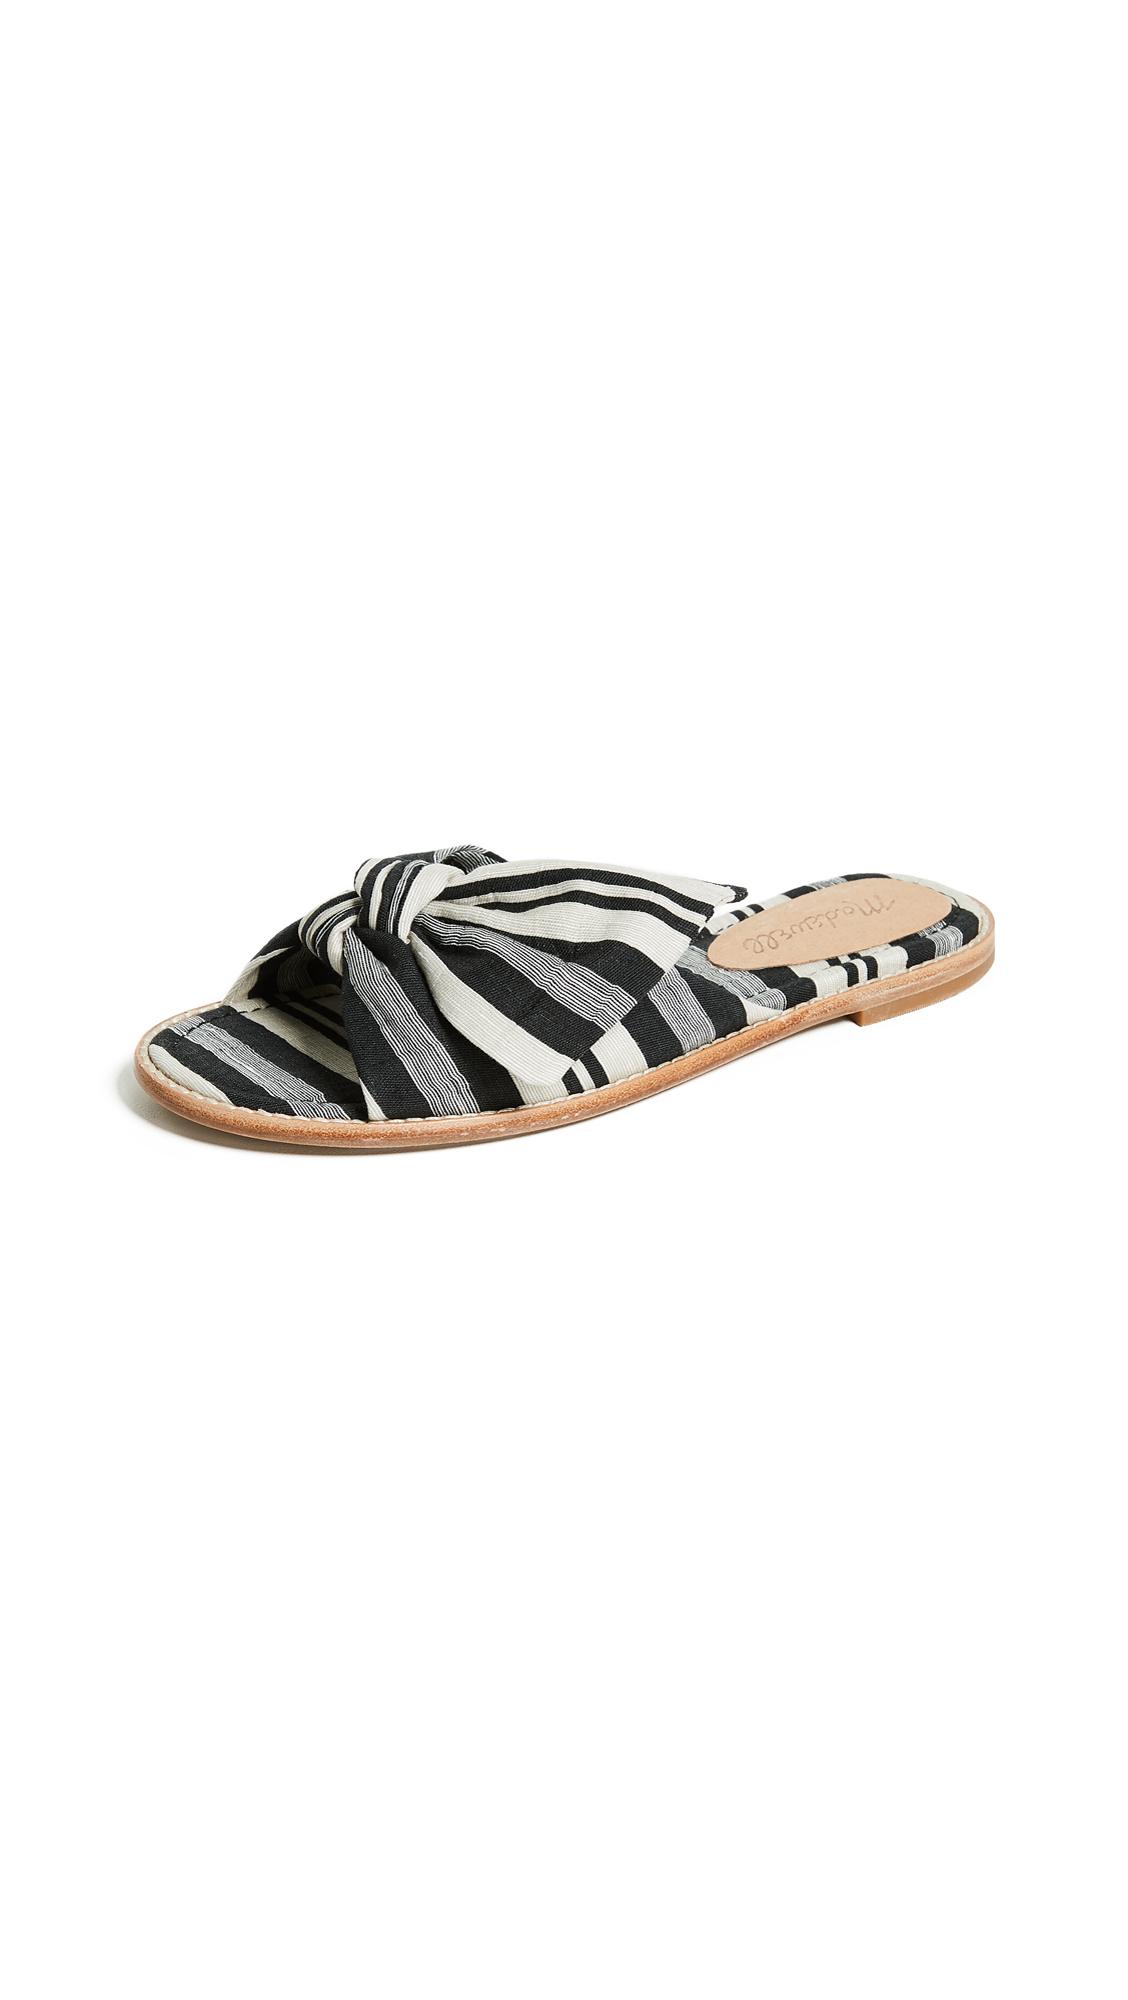 Madewell The Naida Half Bow Sandals